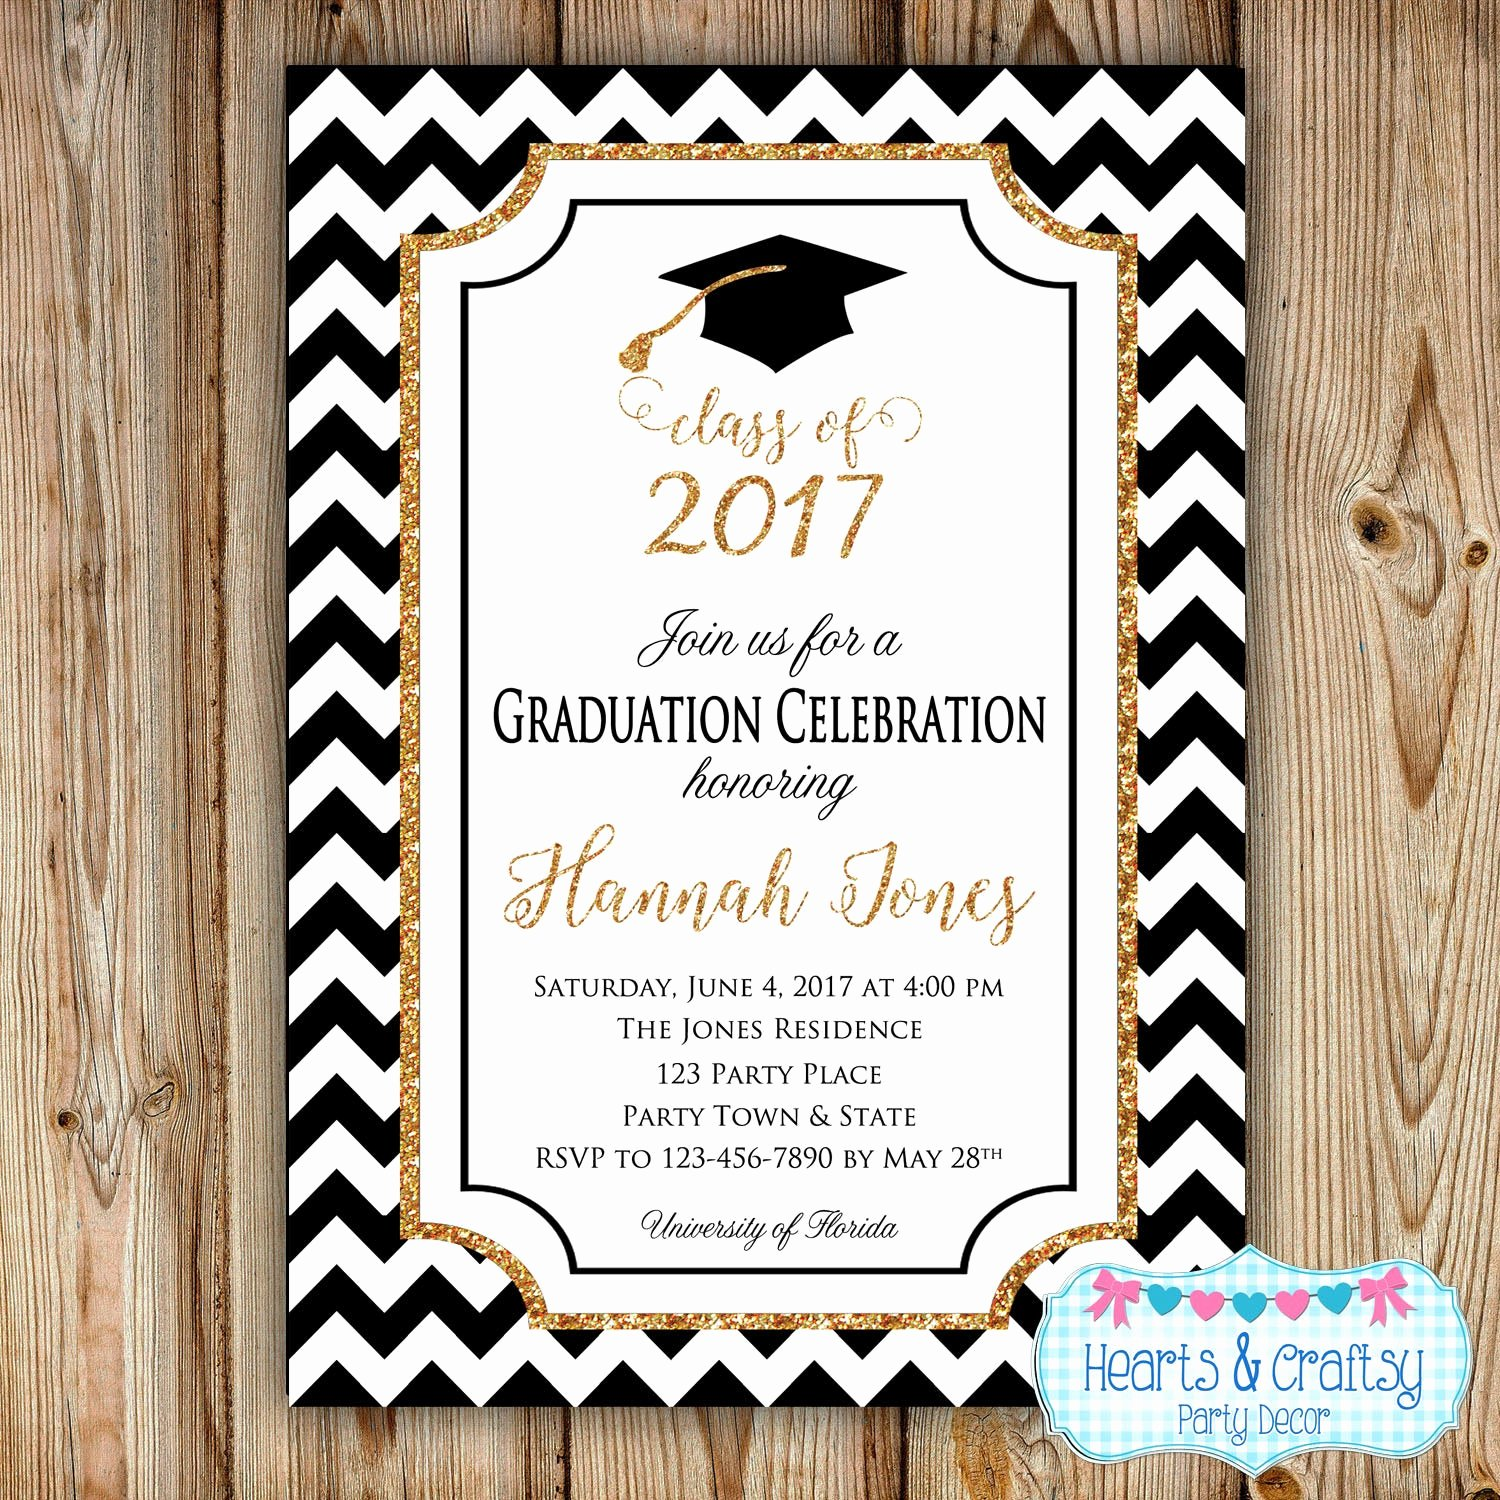 Graduation Party Invitation Template Free Luxury Graduation Party Invitation College Graduation Invitation